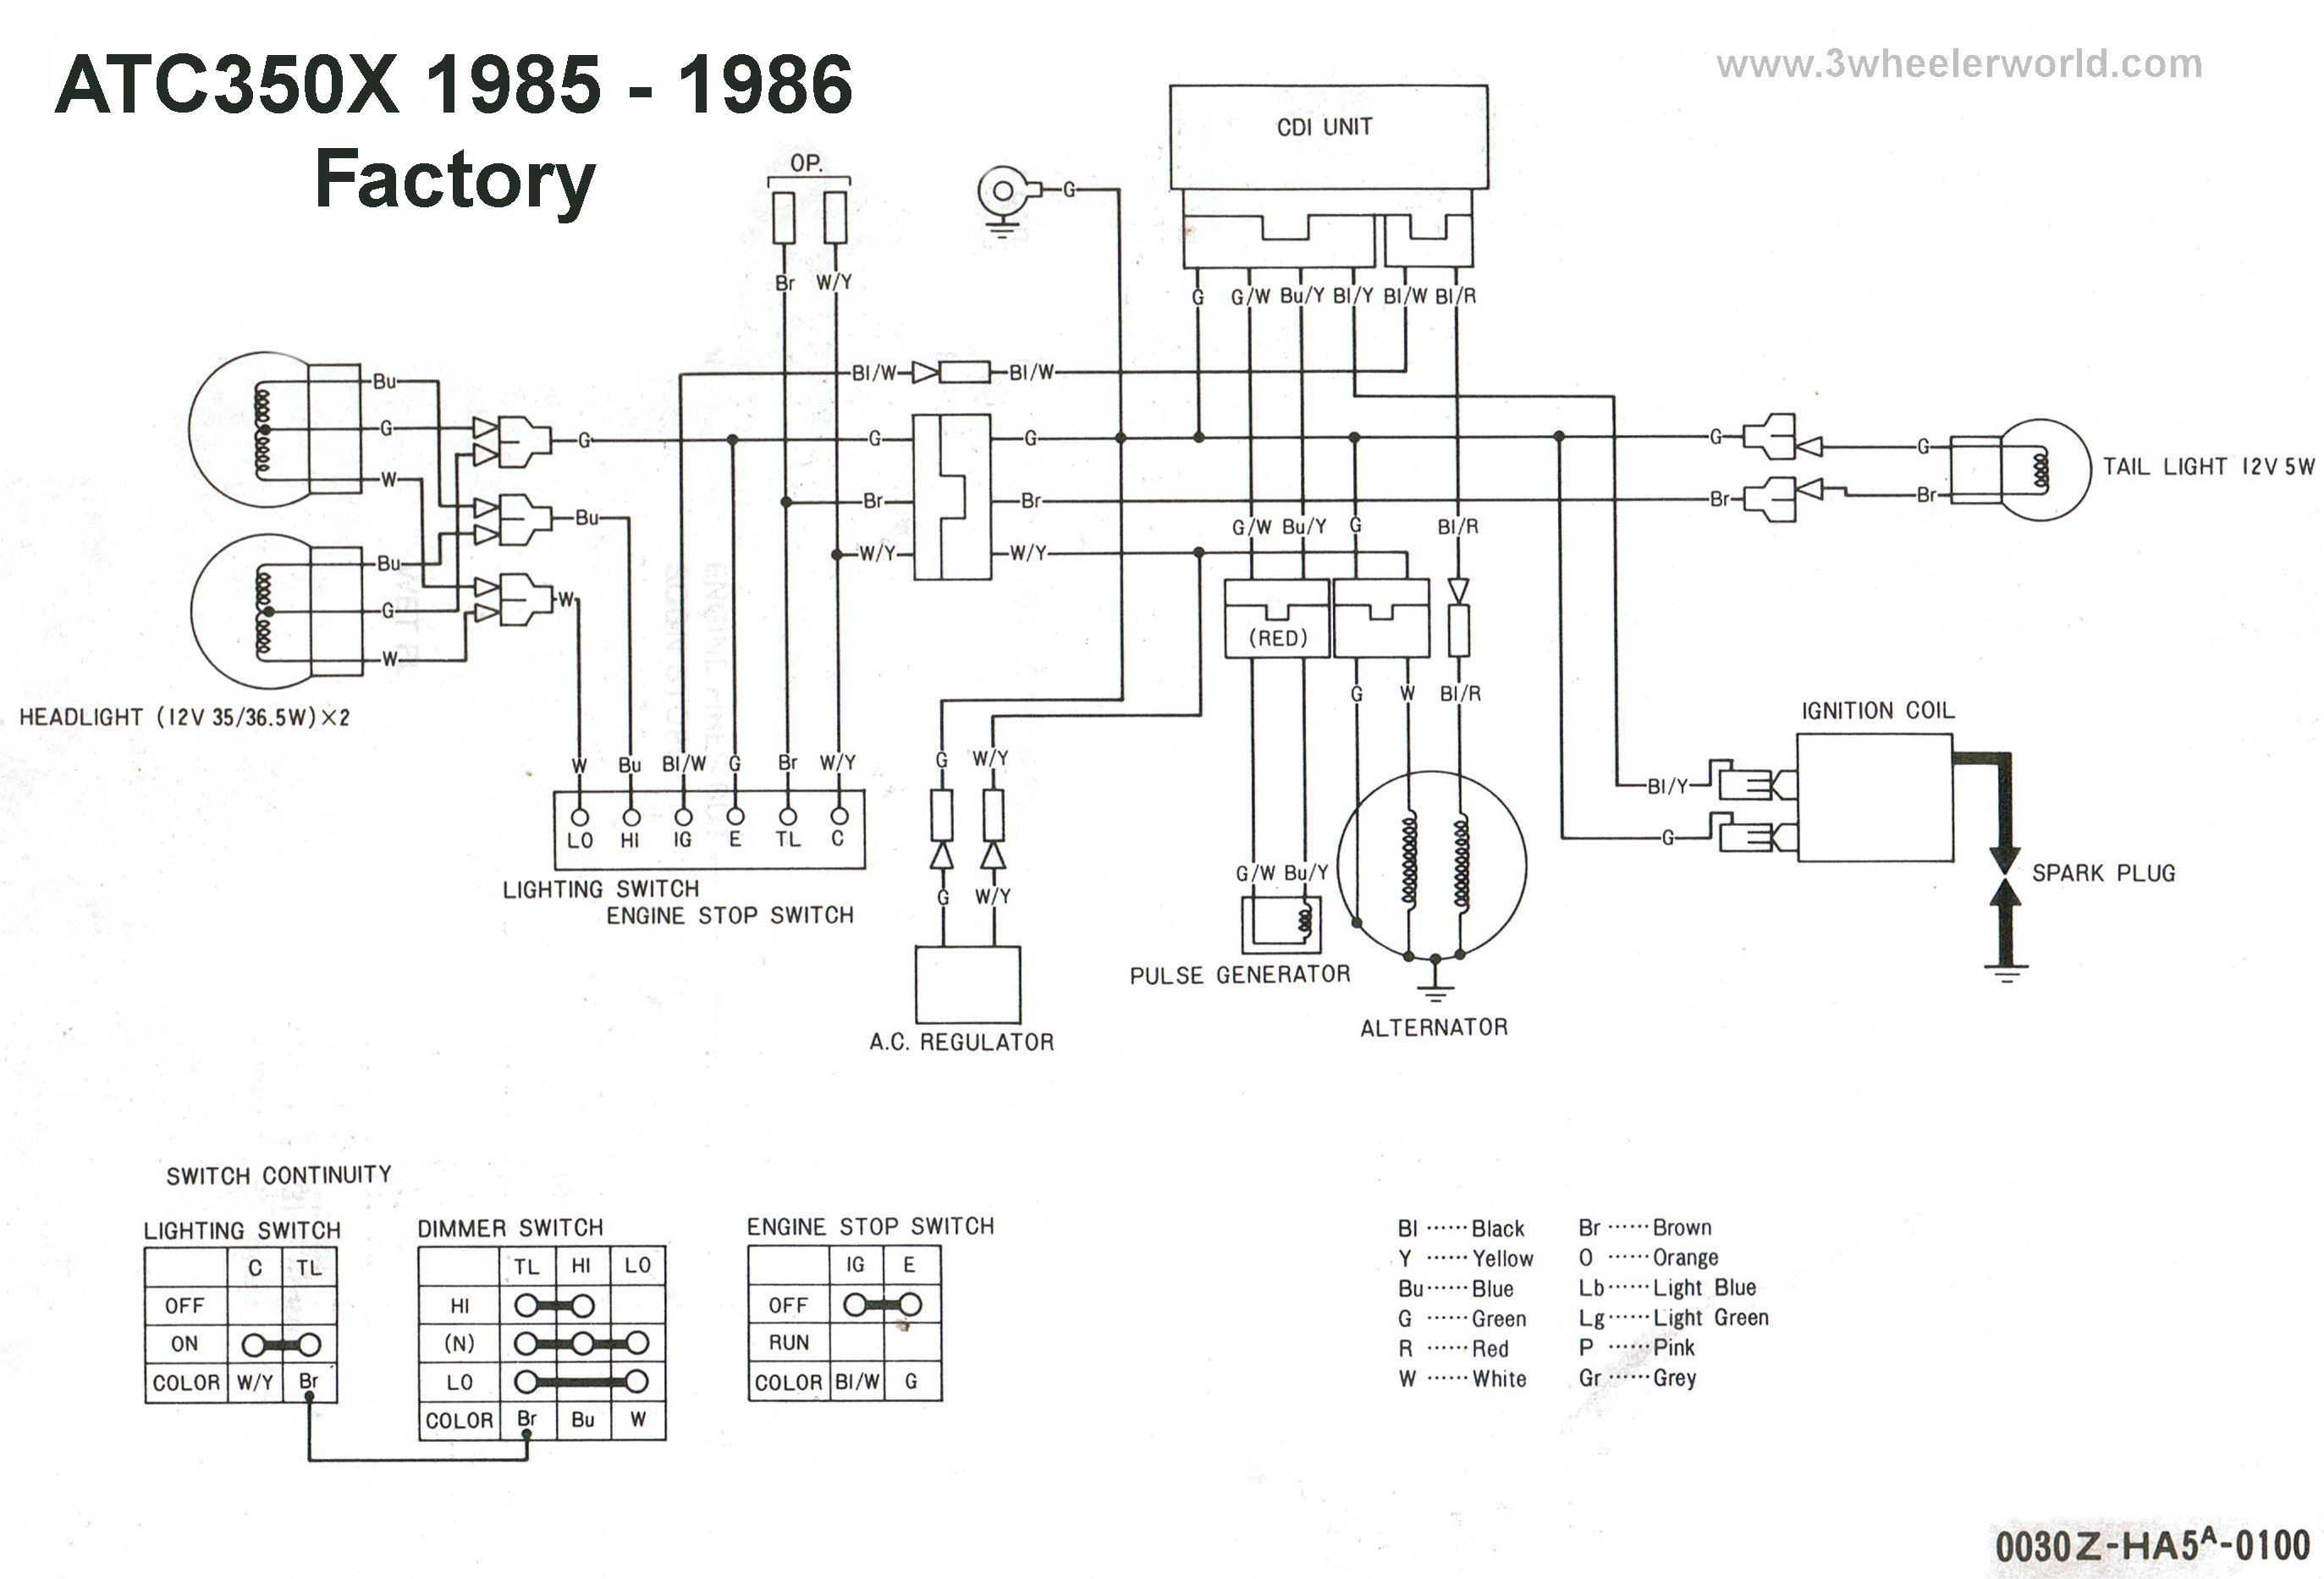 ATC350Xx85Thru86 98 honda fourtrax diagrams wiring diagram simonand trx350 wiring diagram 1987 at nearapp.co